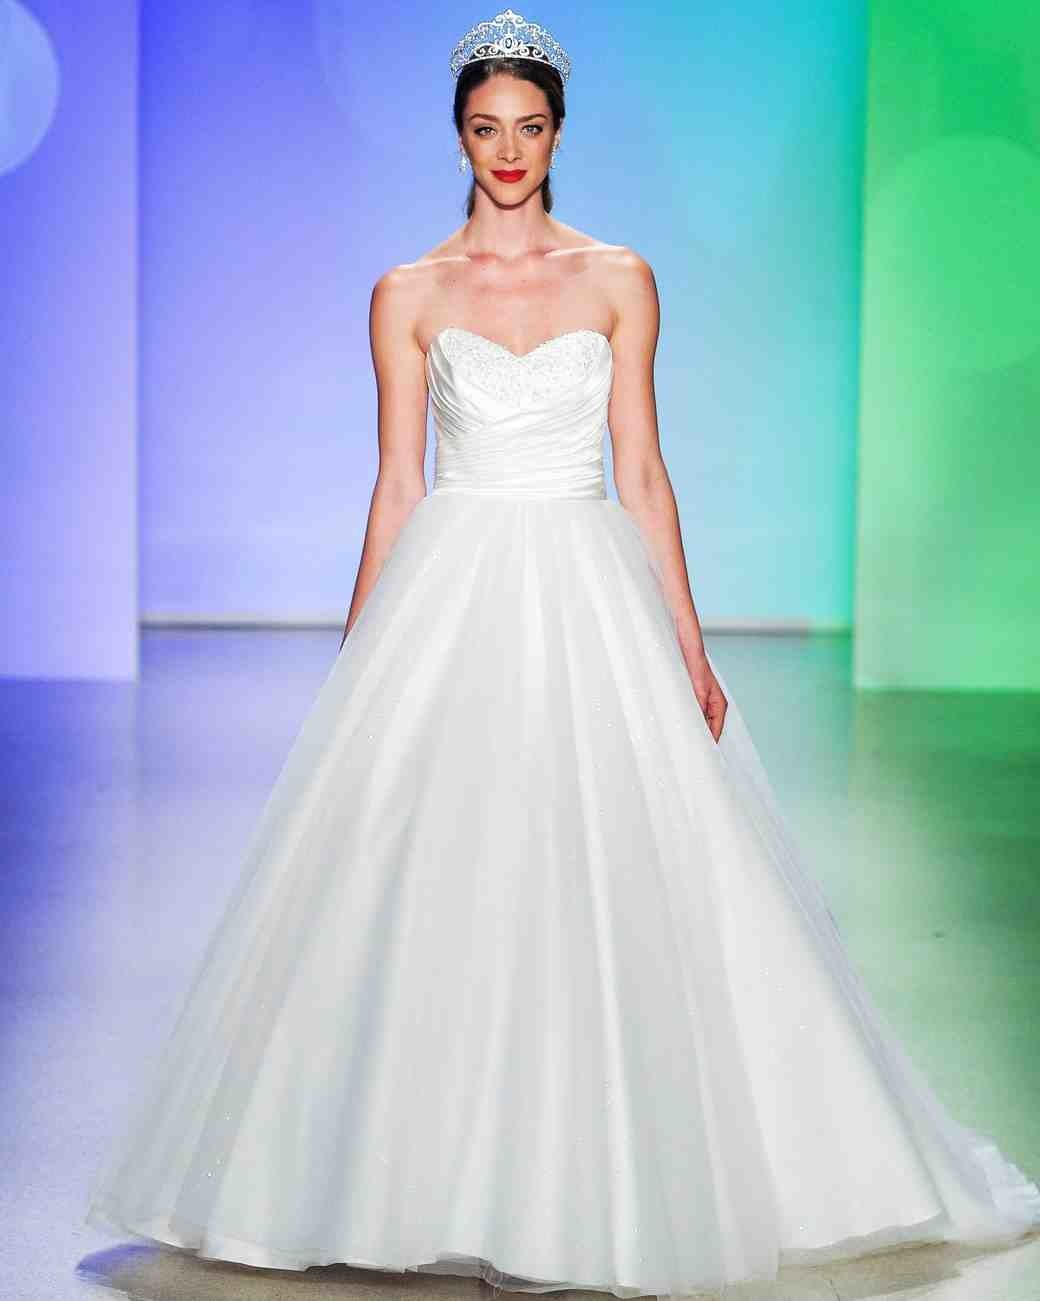 Disney Princesses Wedding Dress Collection by Alfreda Angelo Love the Belle  one